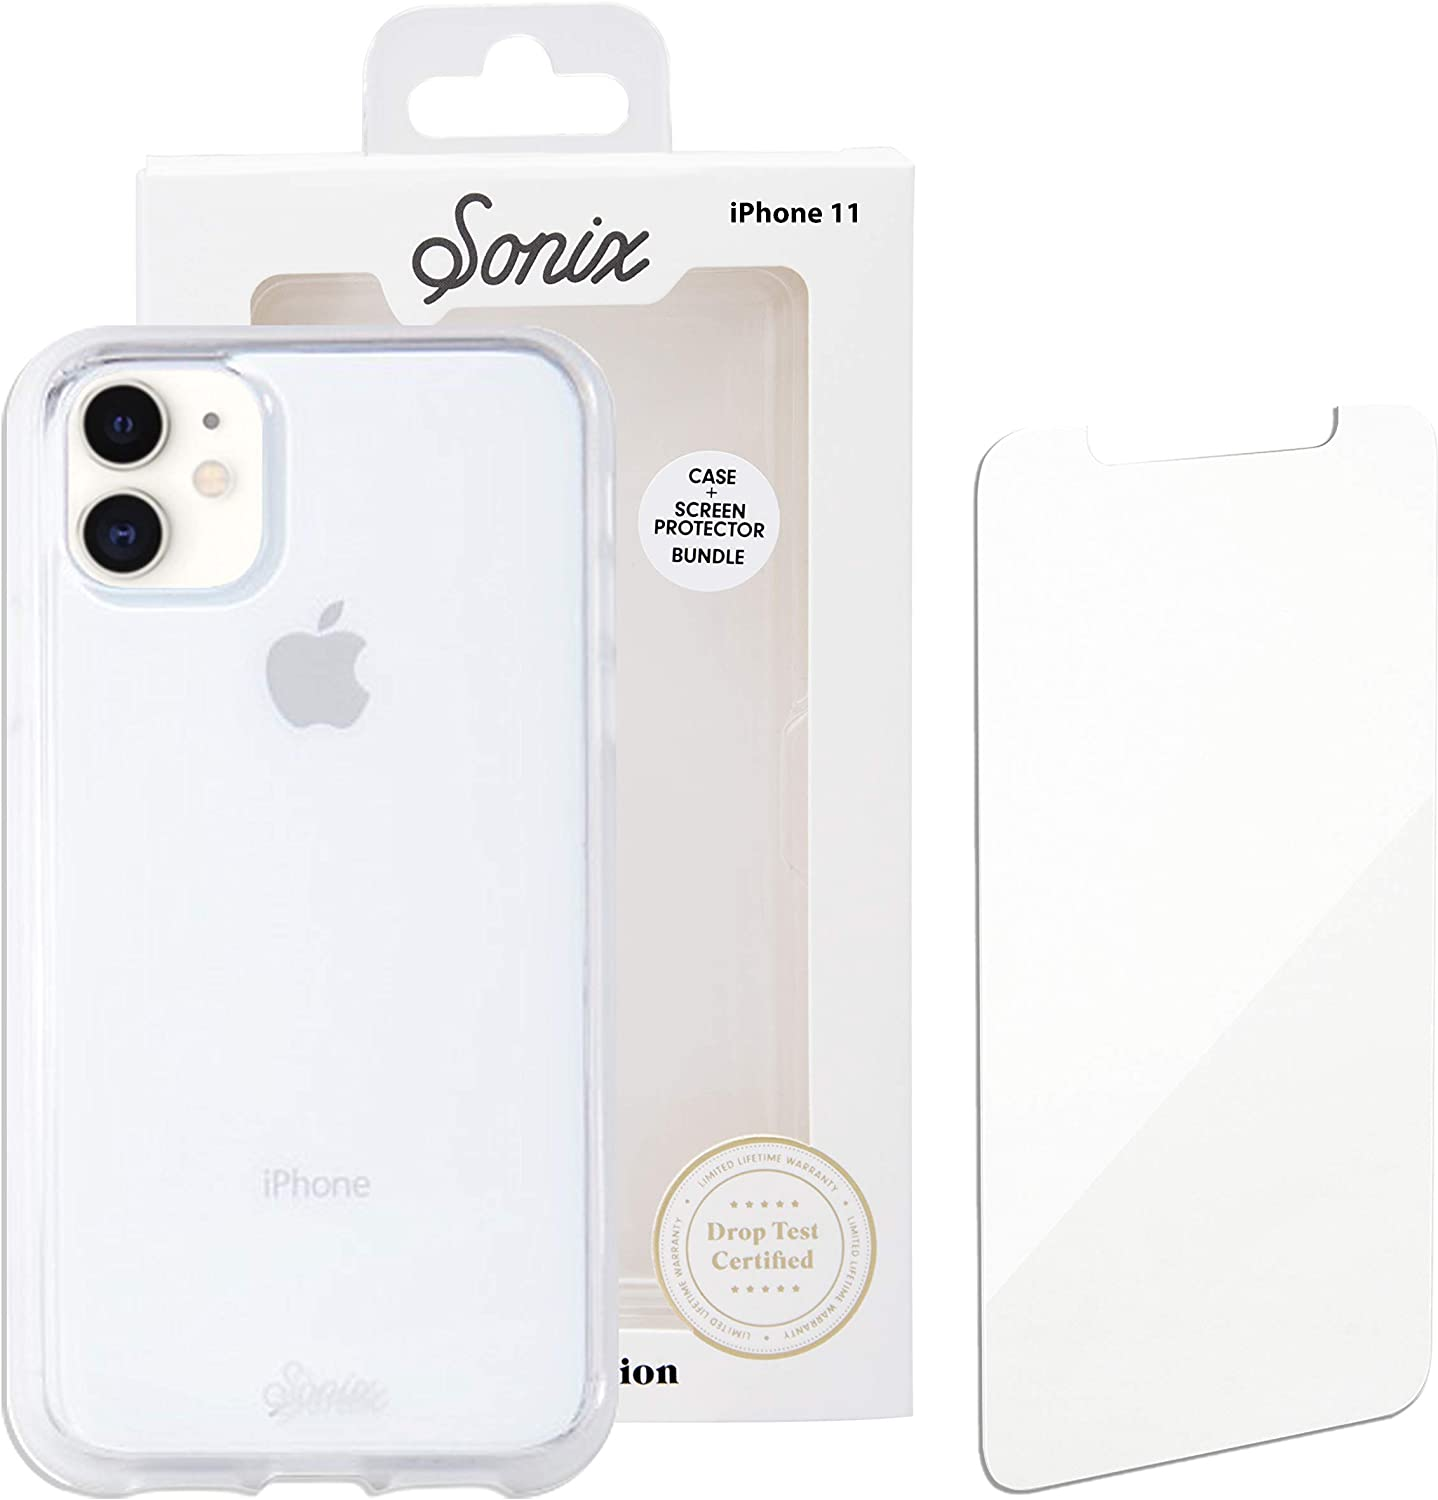 Sonix Clear Case for iPhone 11 and Tempered Glass Screen Protector Clear Case and Screen Protector Bundle Pack for Apple iPhone 11 10ft Drop Tested